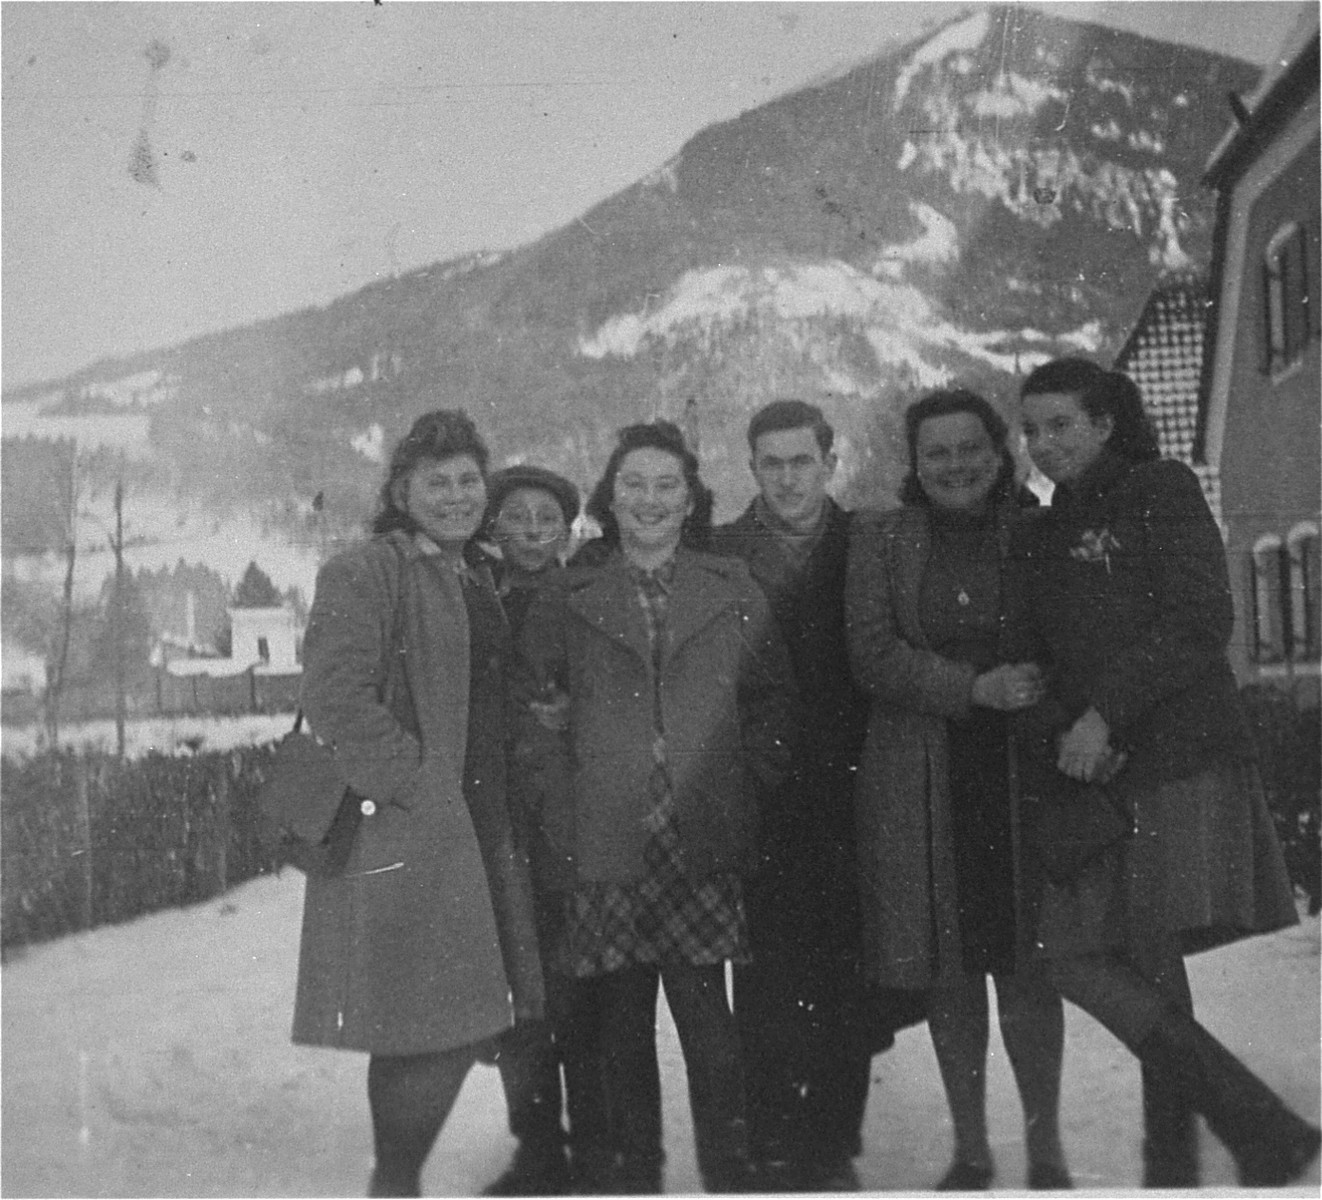 Group portrait of young Jewish DPs from the Salzburg displaced persons camp on an outing in the mountains.  Pictured from left to right are Ester Himmelfarb, unknown, Hadasa Werdygier, unknown,  Helen Rubinsztajn, and Mania Potok.  The last four were from Bedzin, Poland.